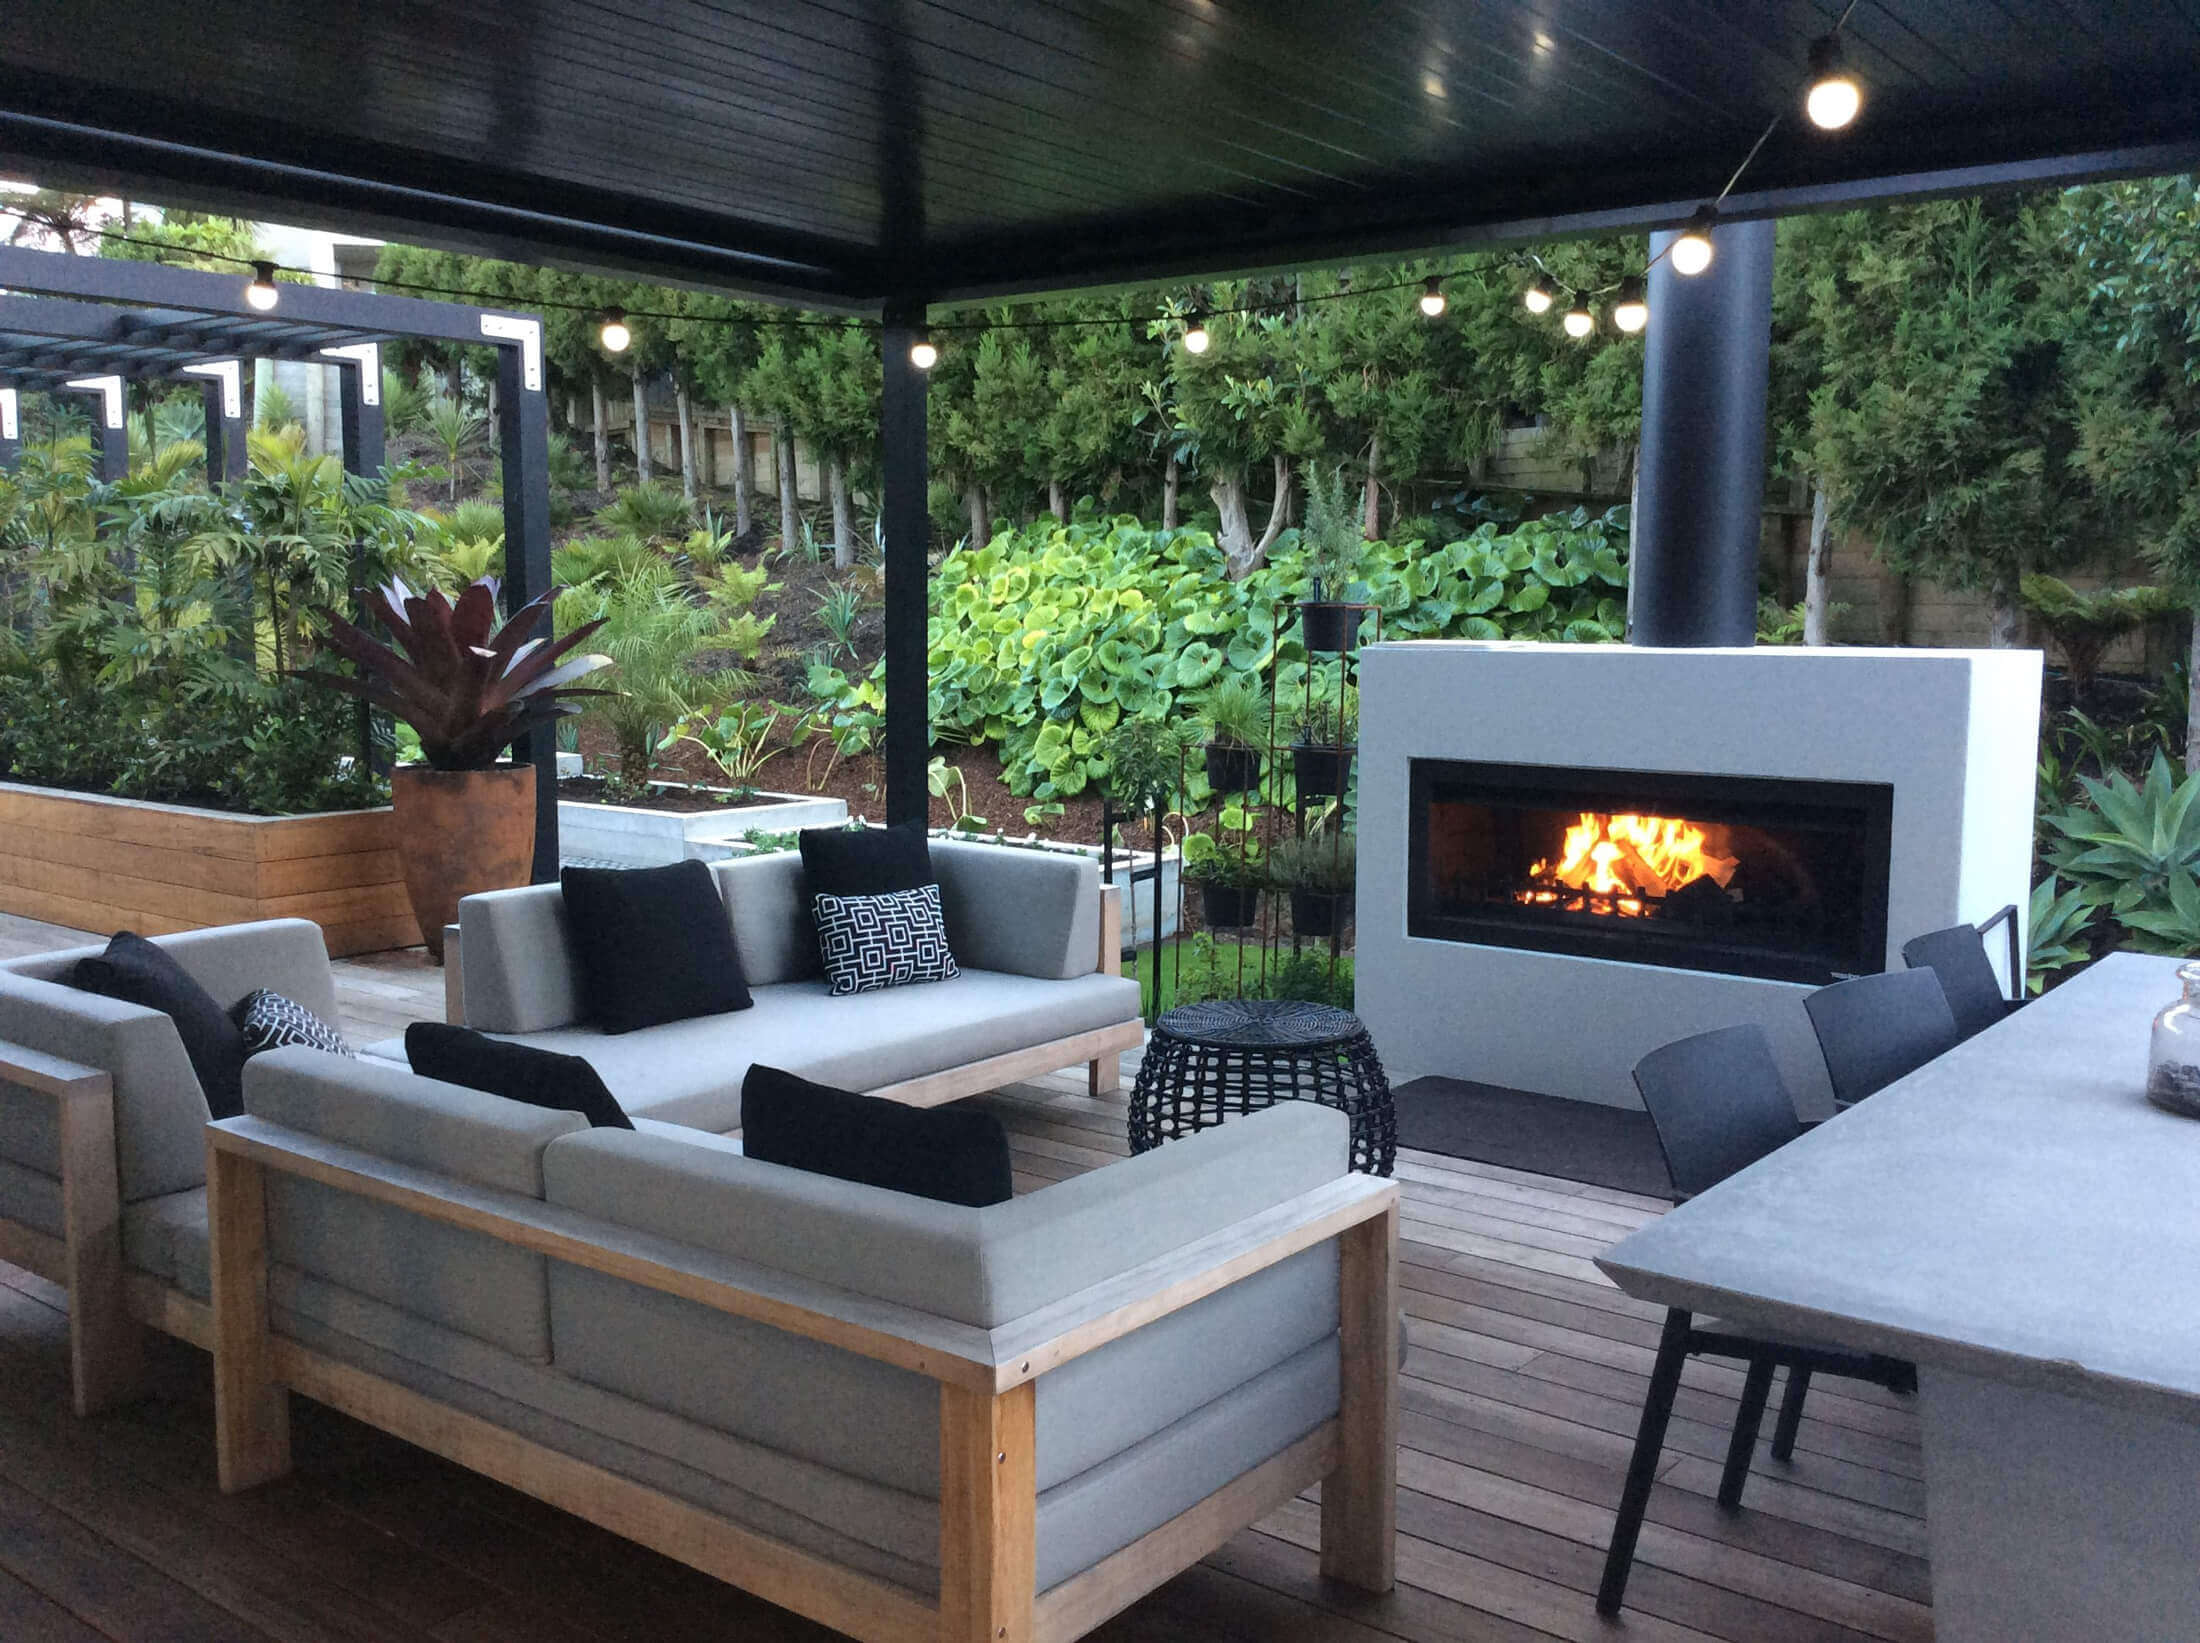 Landscape architecture inspiration featuring an outdoor fireplaces as the focal point